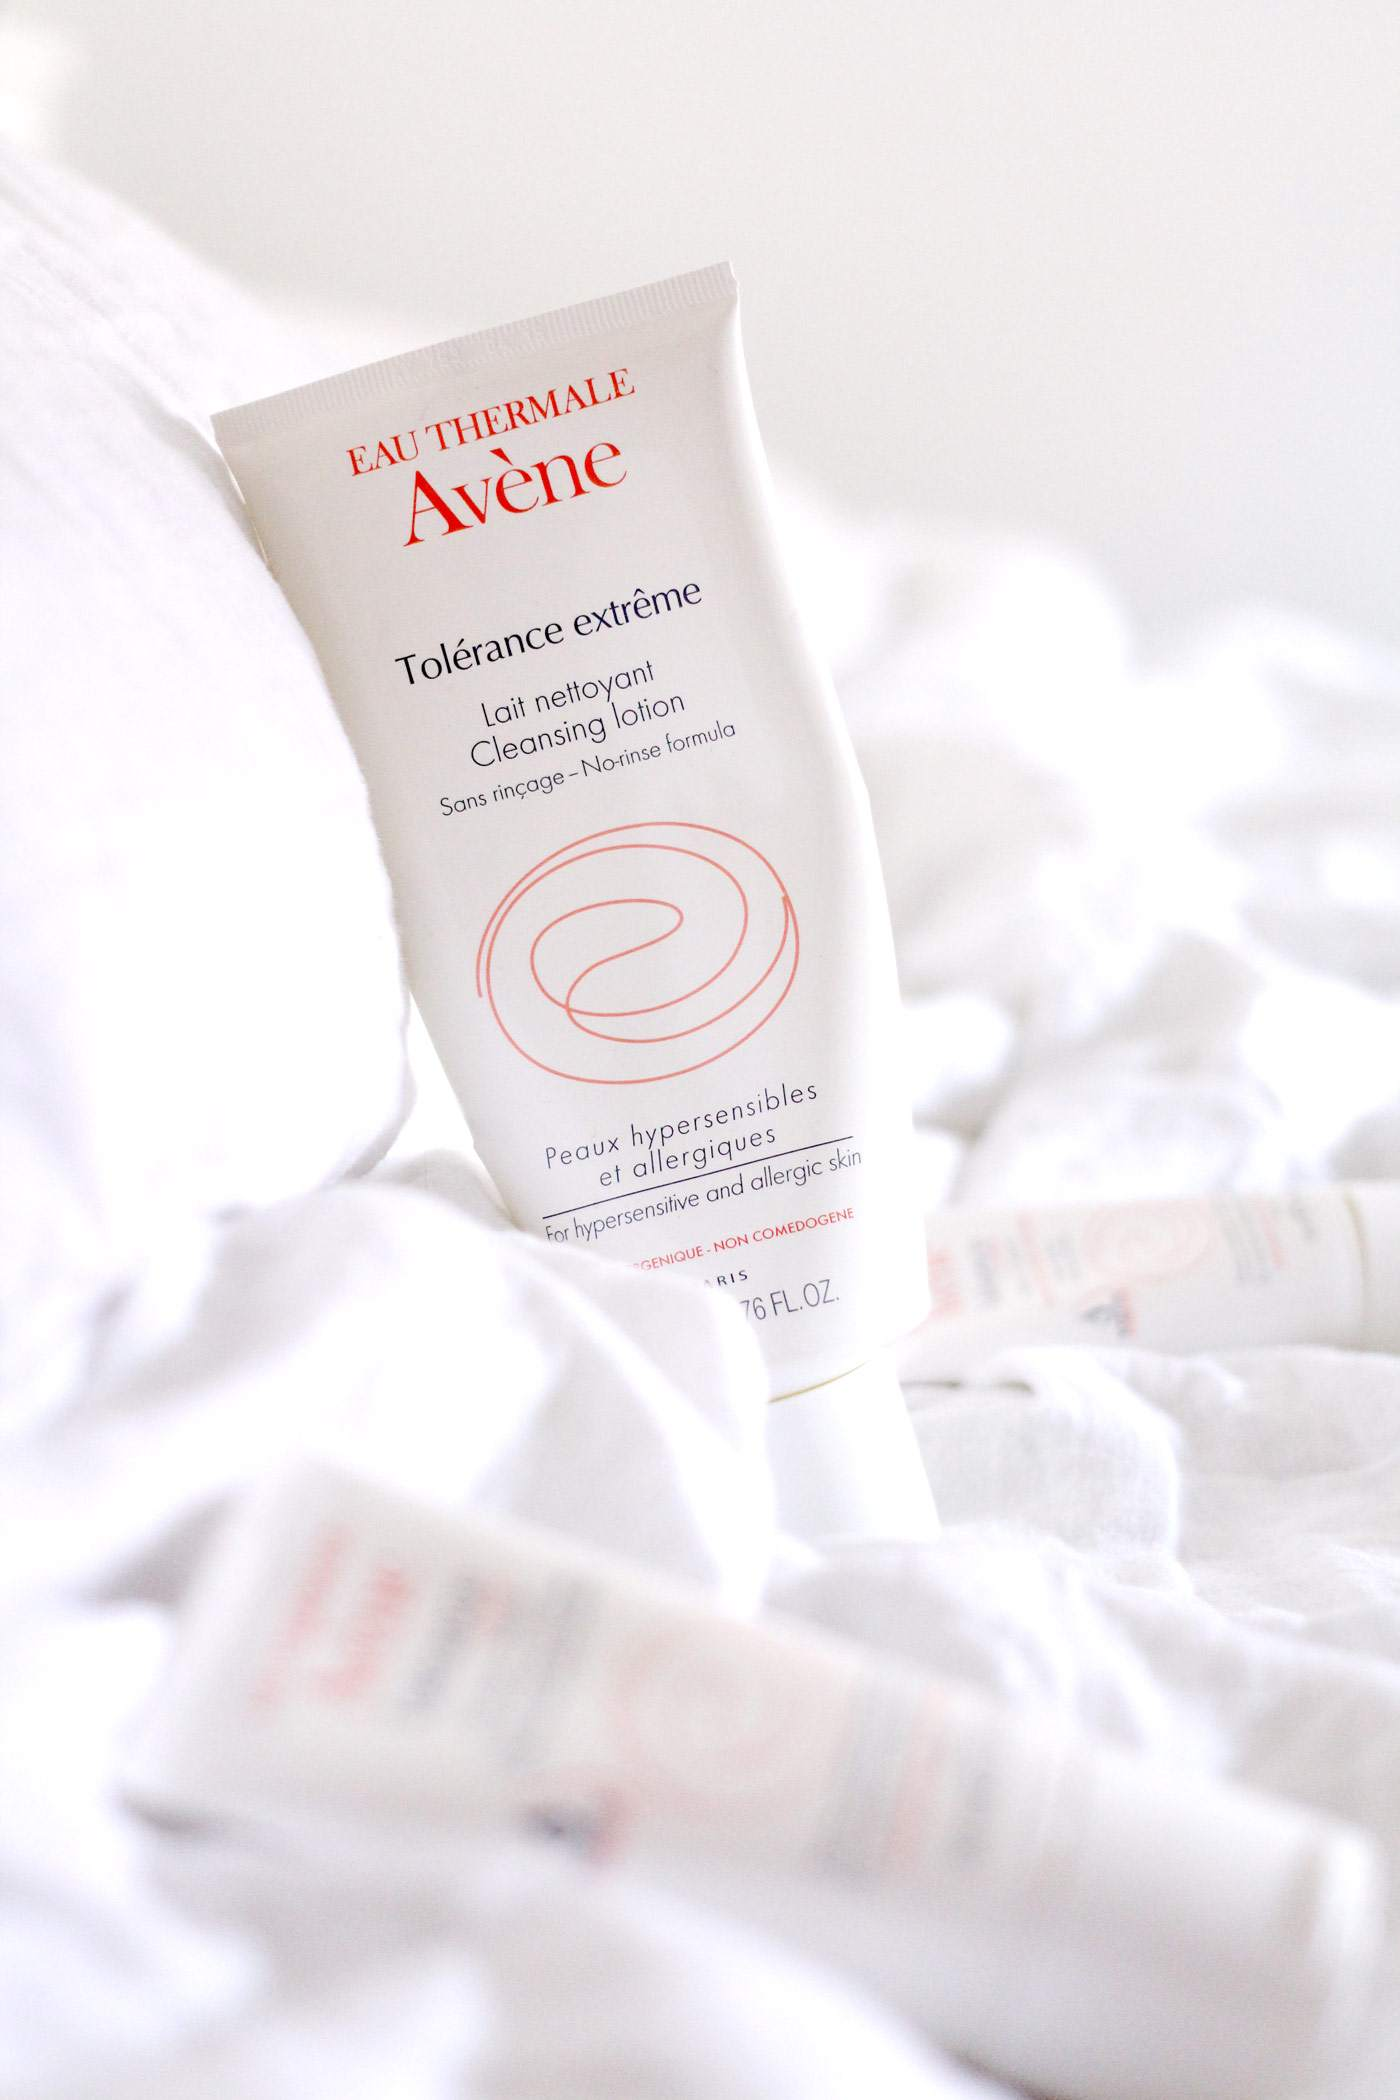 avene-tolerance-extreme-range-review-final